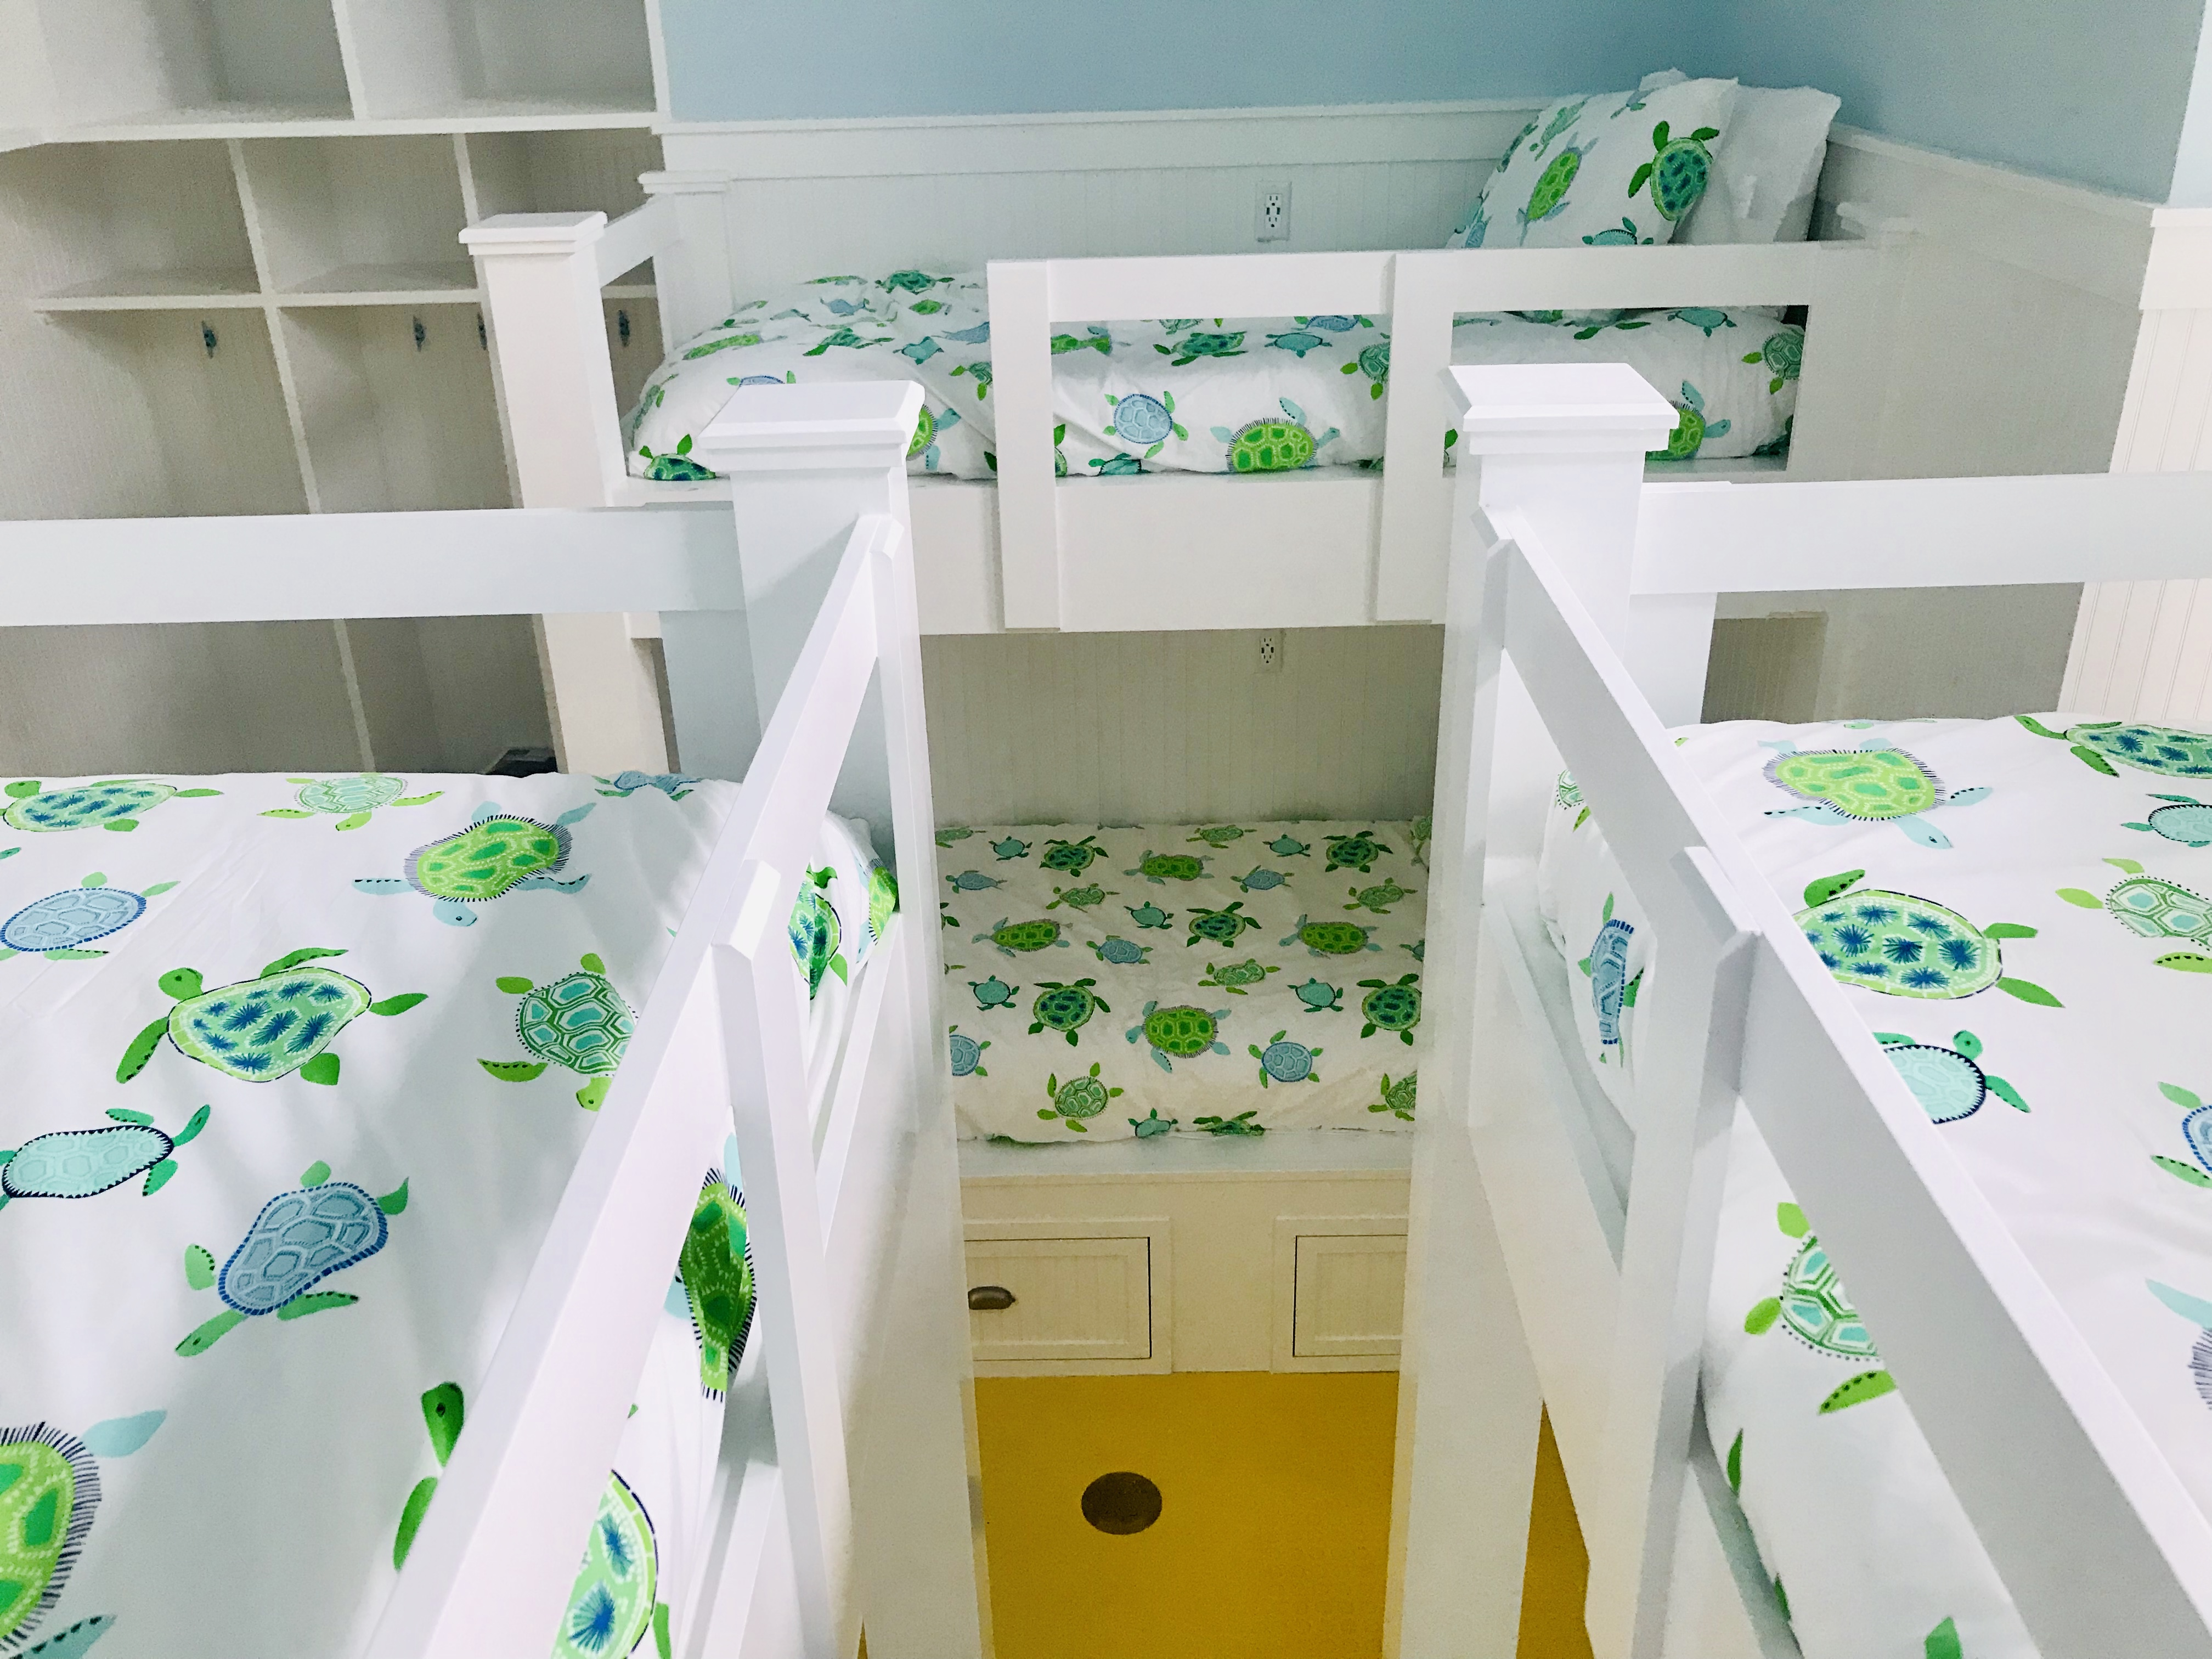 There is plenty of space for everyone and even cubbies where they can hang their clothes.